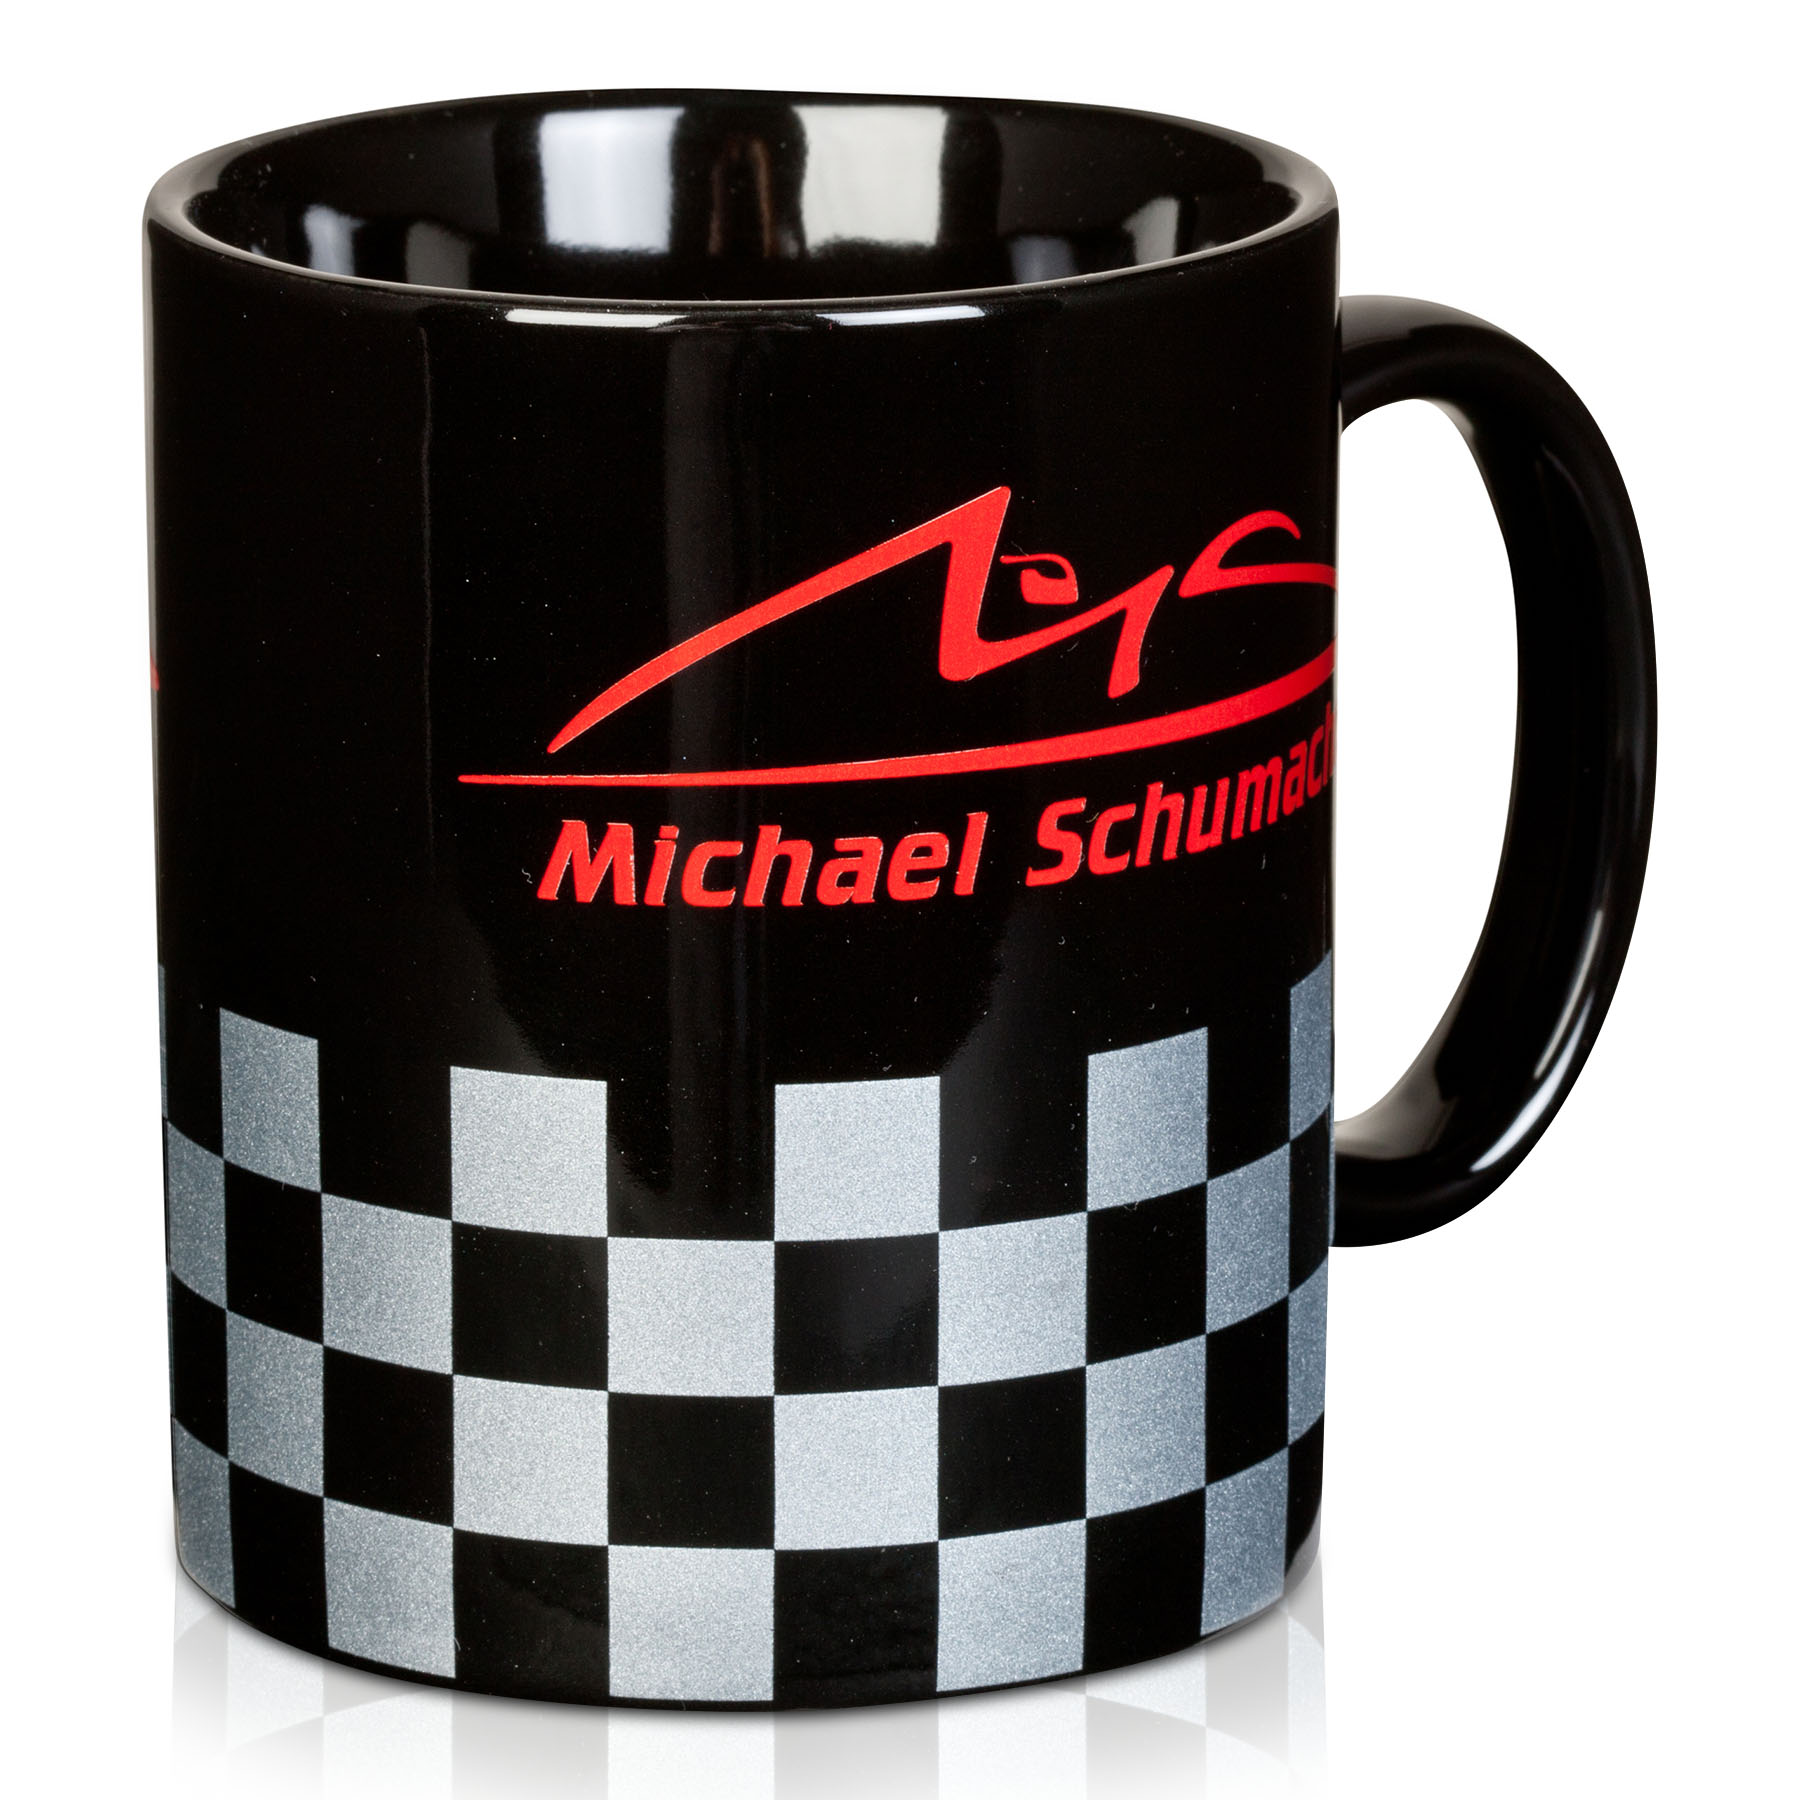 Michael Schumacher Chequered Mug